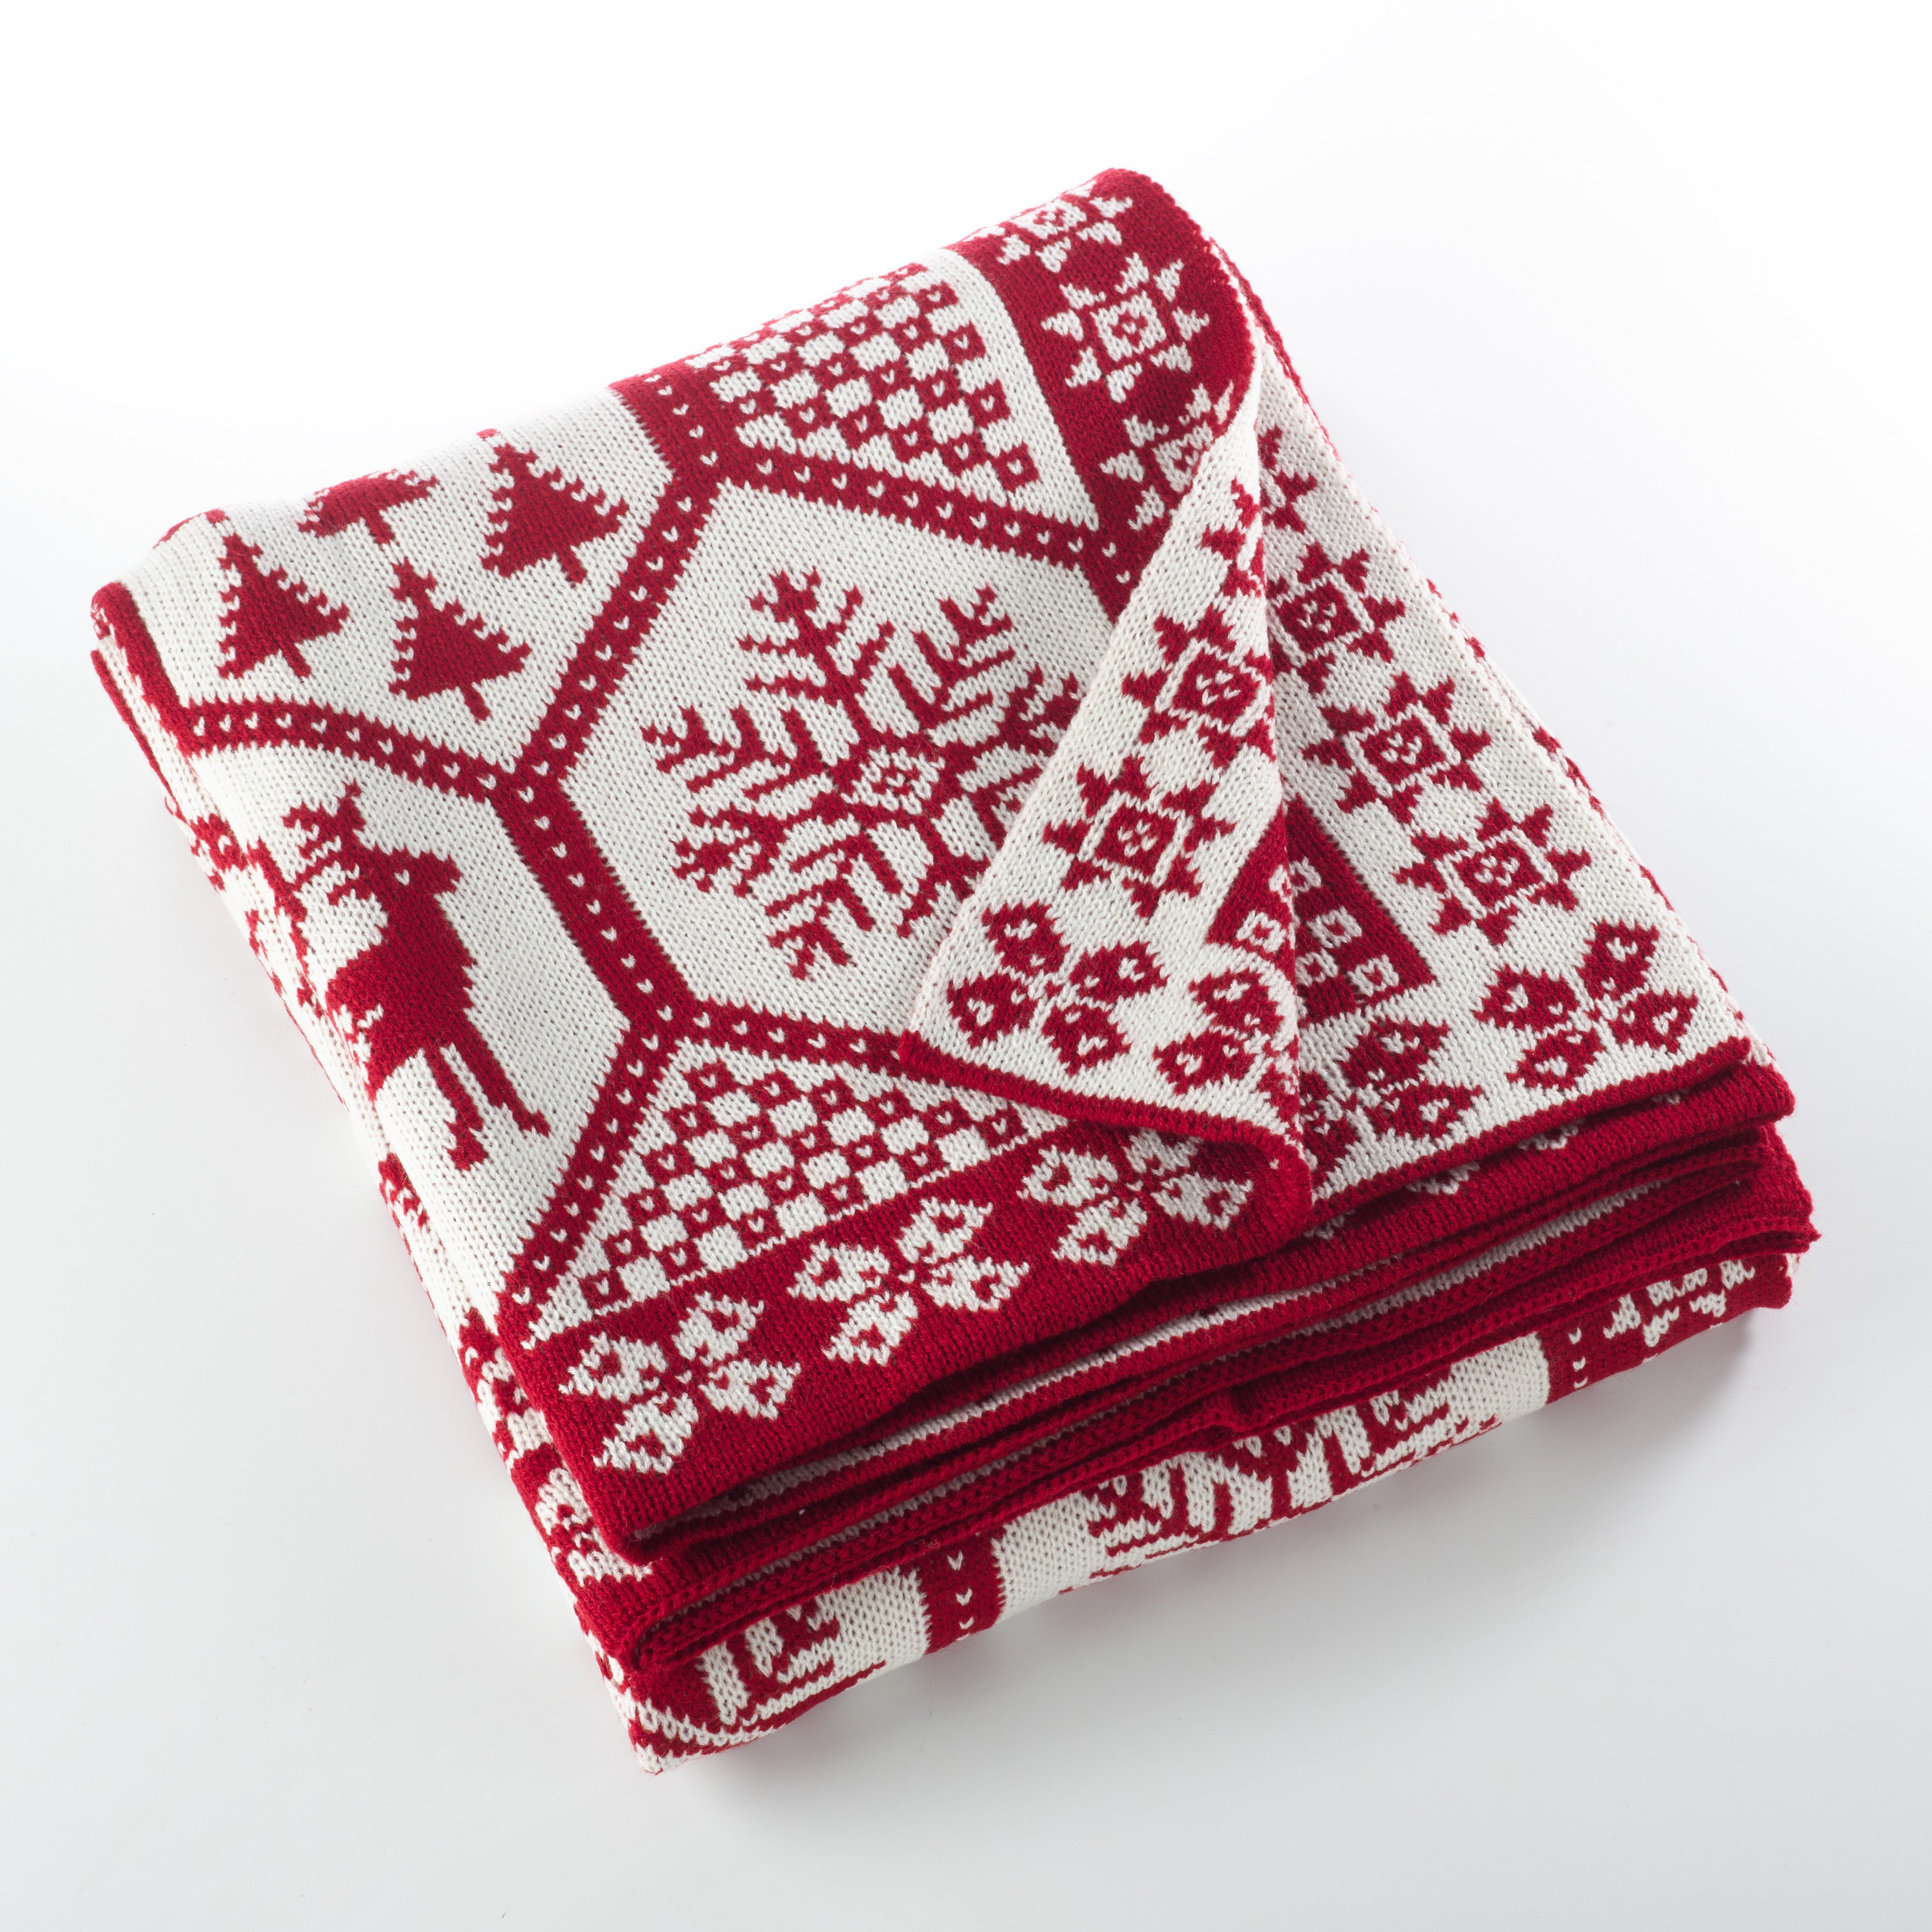 Christmas Throw Blanket.Sevan Collection Christmas Design Knitted Throw Blanket